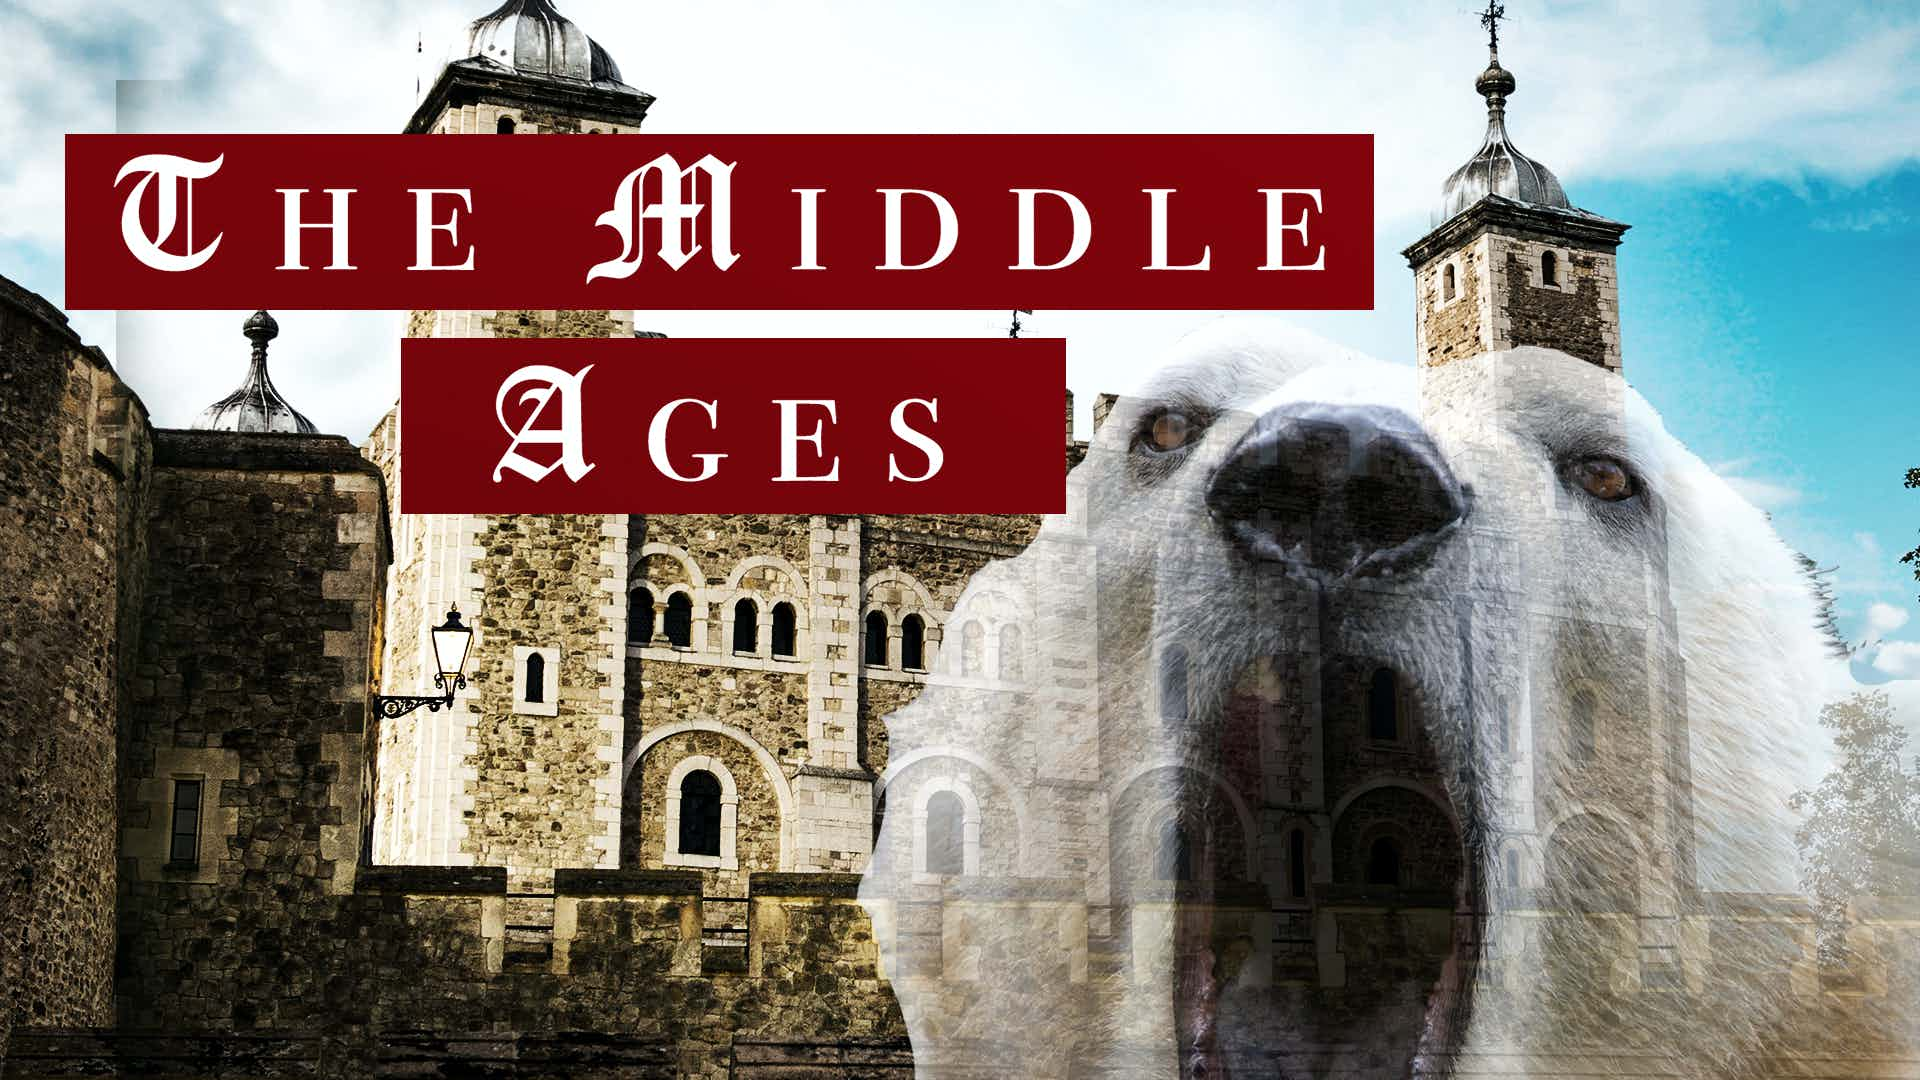 The Kings and Queens of England: The Middle Ages